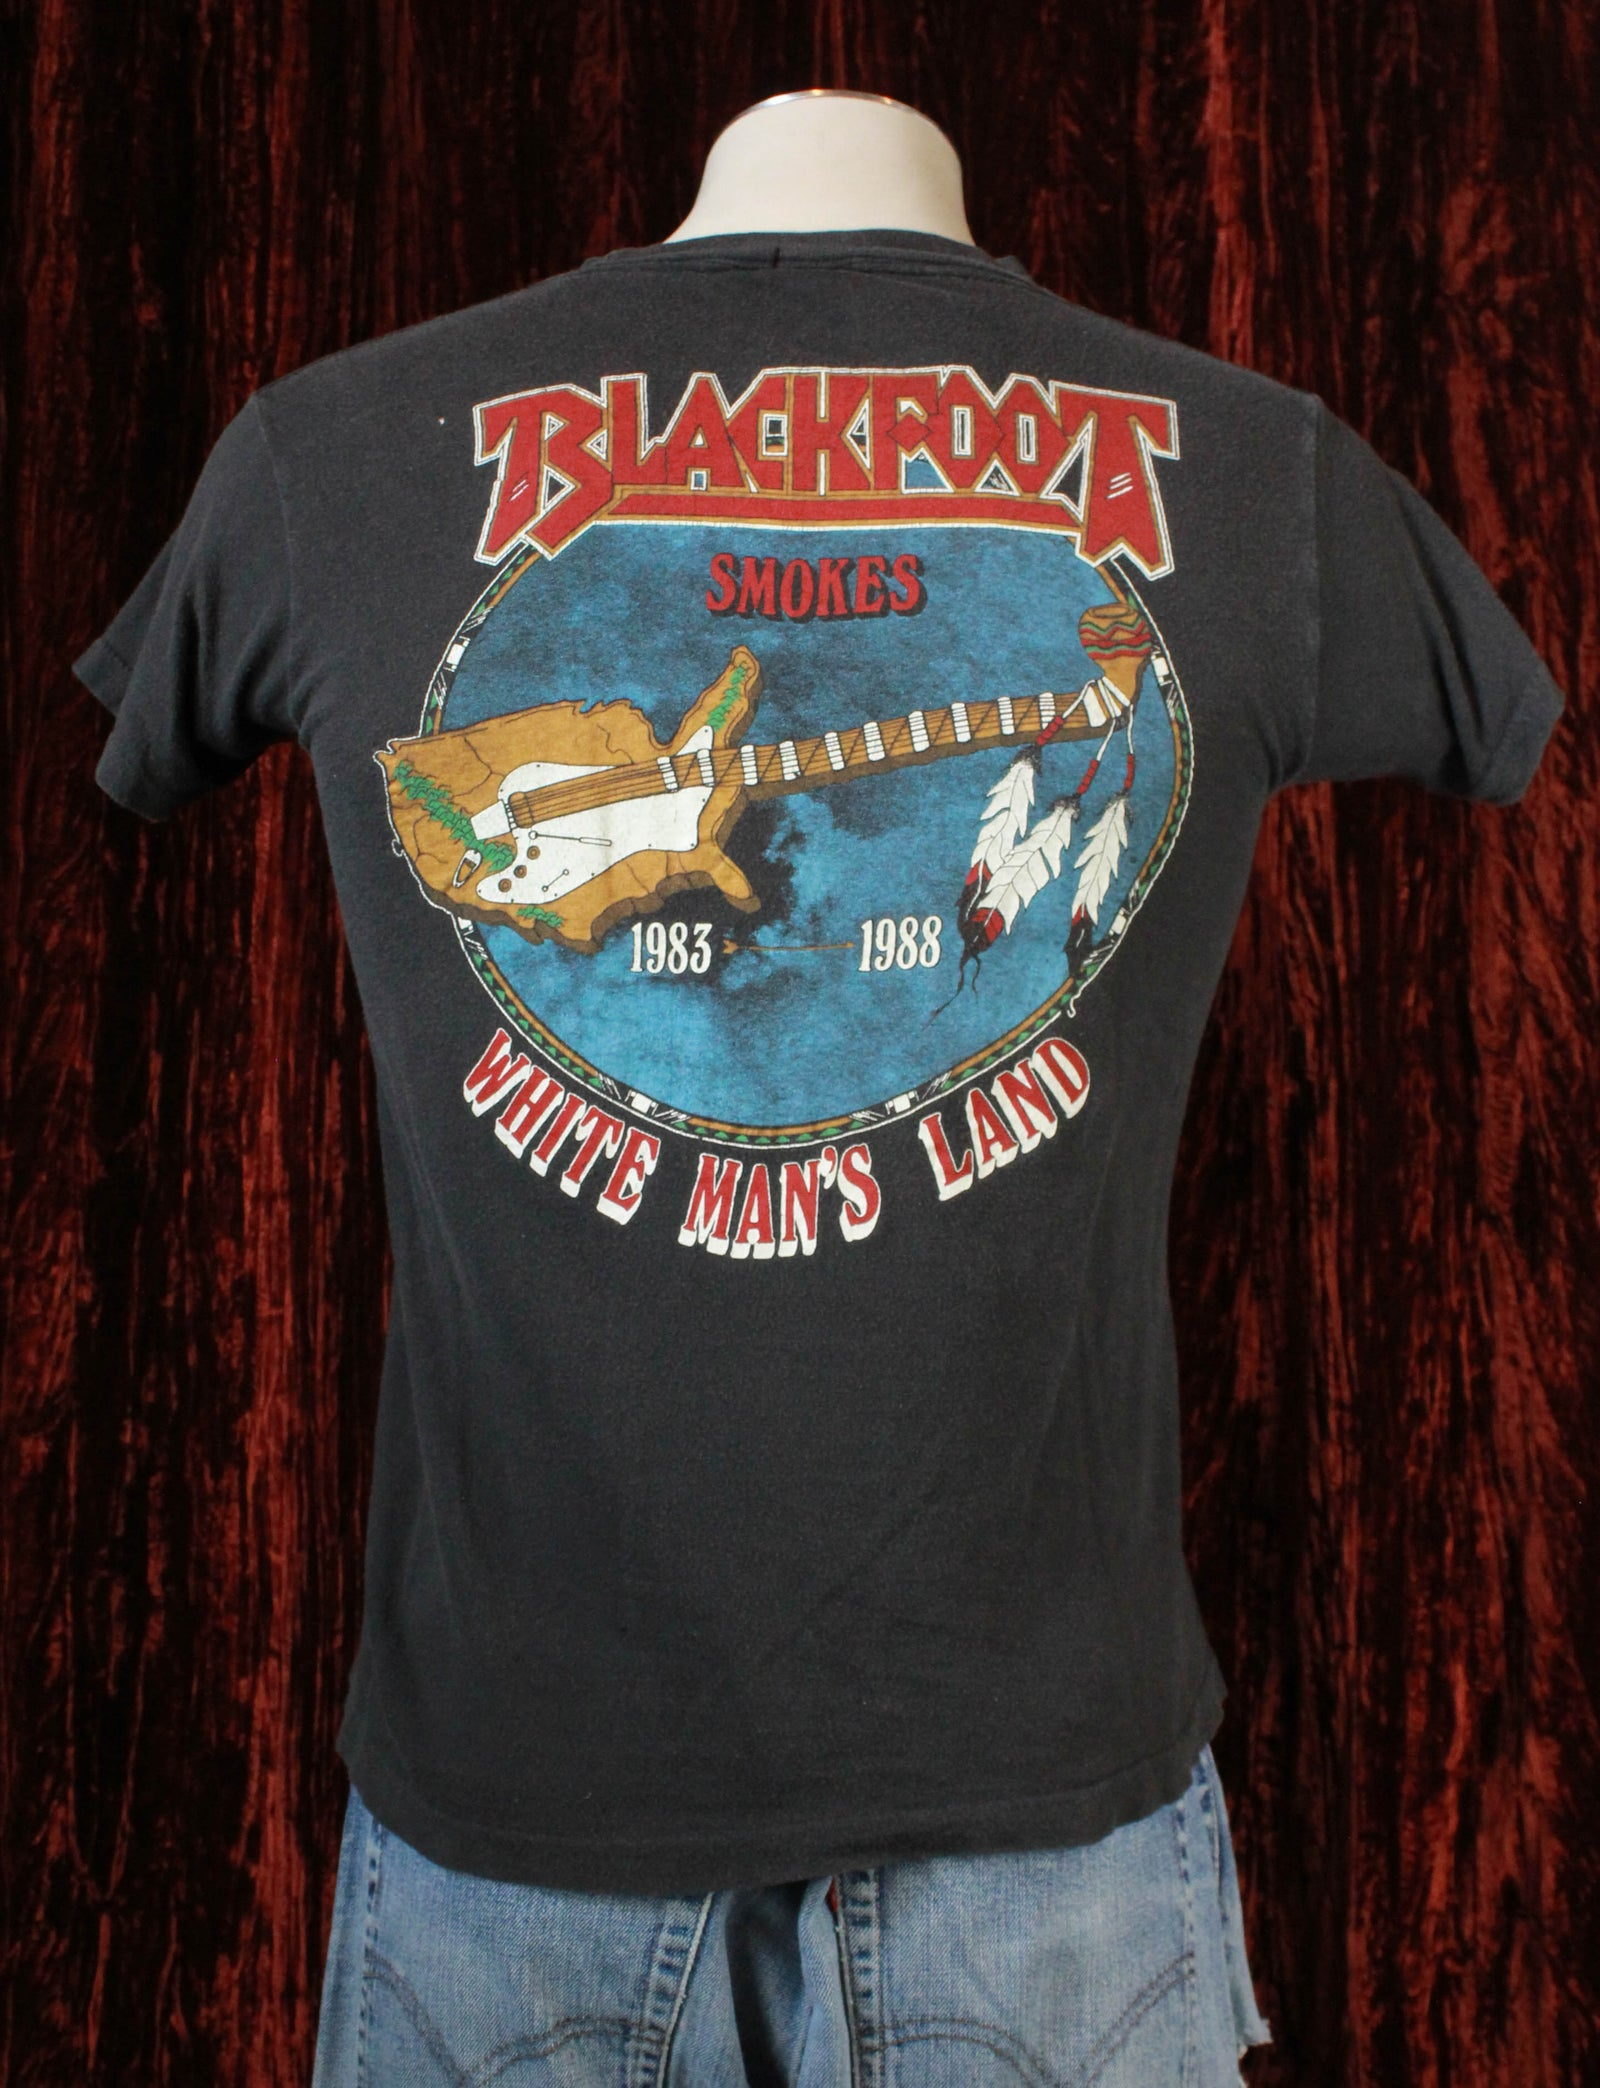 Vintage Blackfoot Concert T Shirt 1983-88 Siogo - Medium